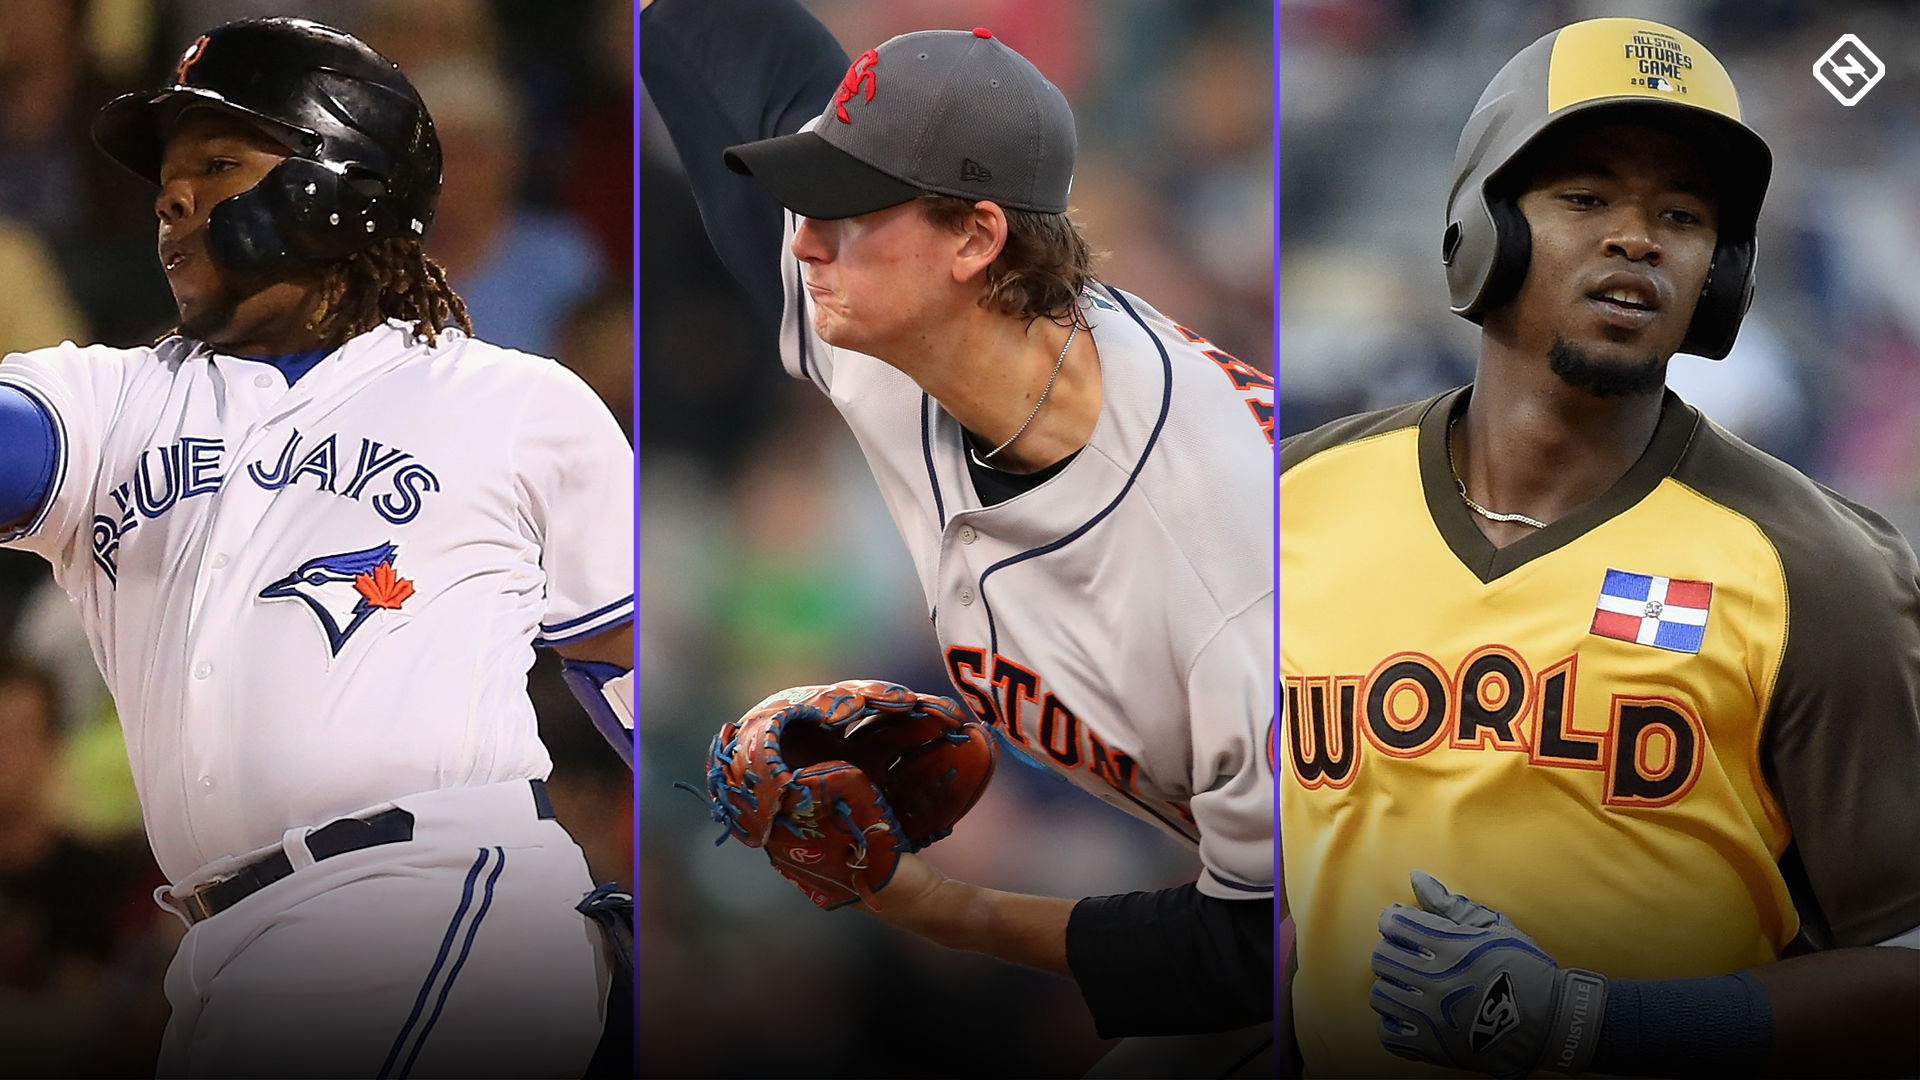 Top Mlb Keepers 2020.2019 Mlb Top Prospects Ranking The Rookies Sleepers To